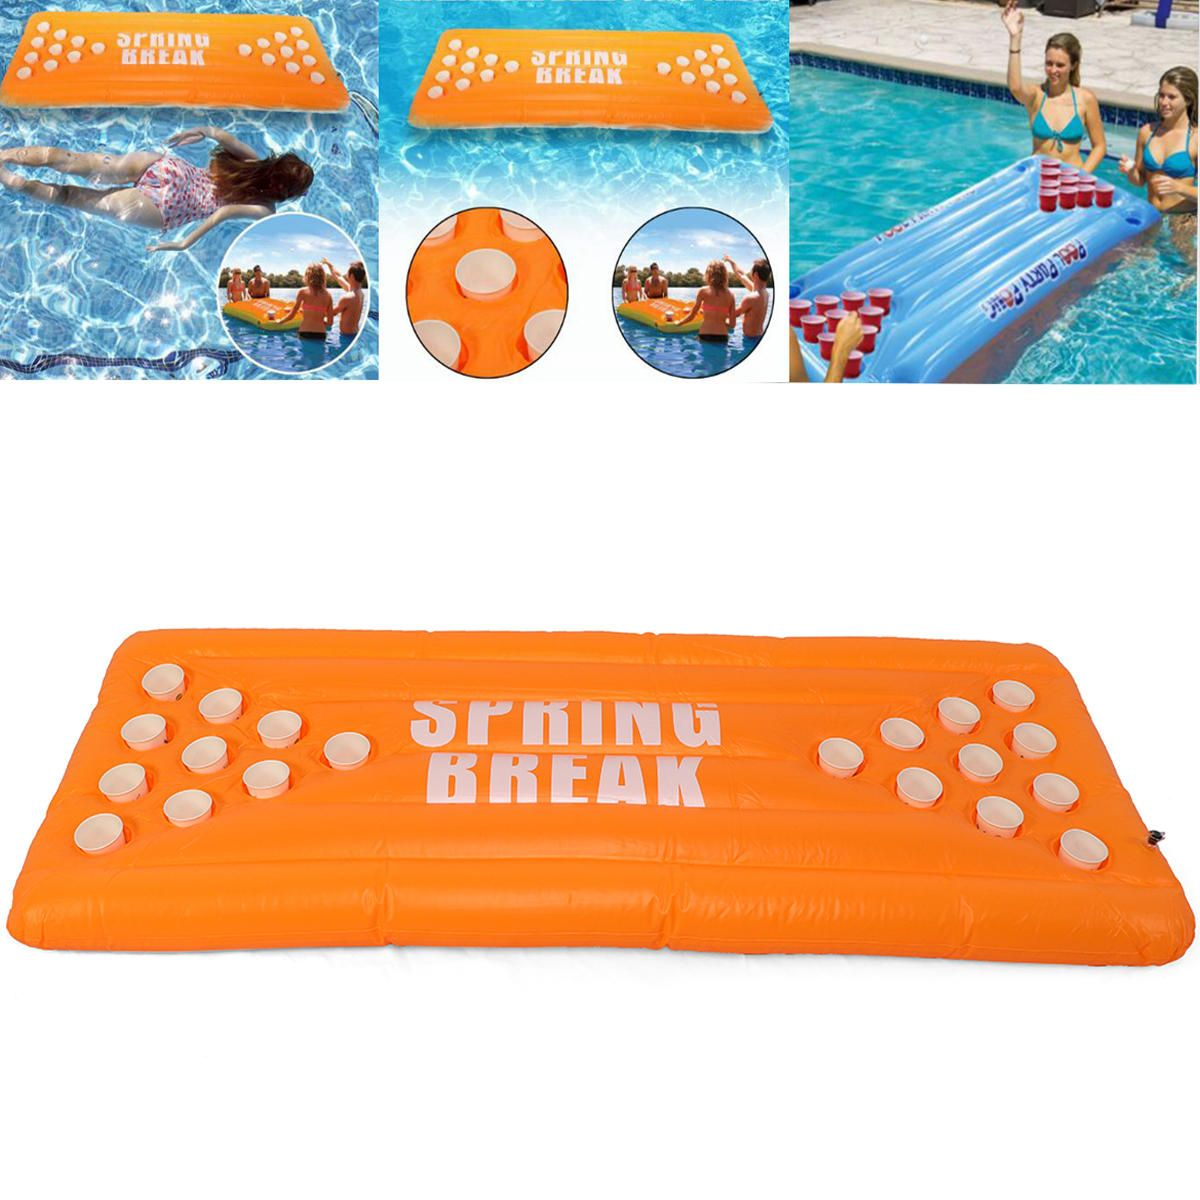 Us 78 68 Inflatable Beer Pong Ball Table Water Floating Raft Lounge Pool Game 20 Cups Holder Outdoor Recreation From Sports Outdoor On Banggood Com